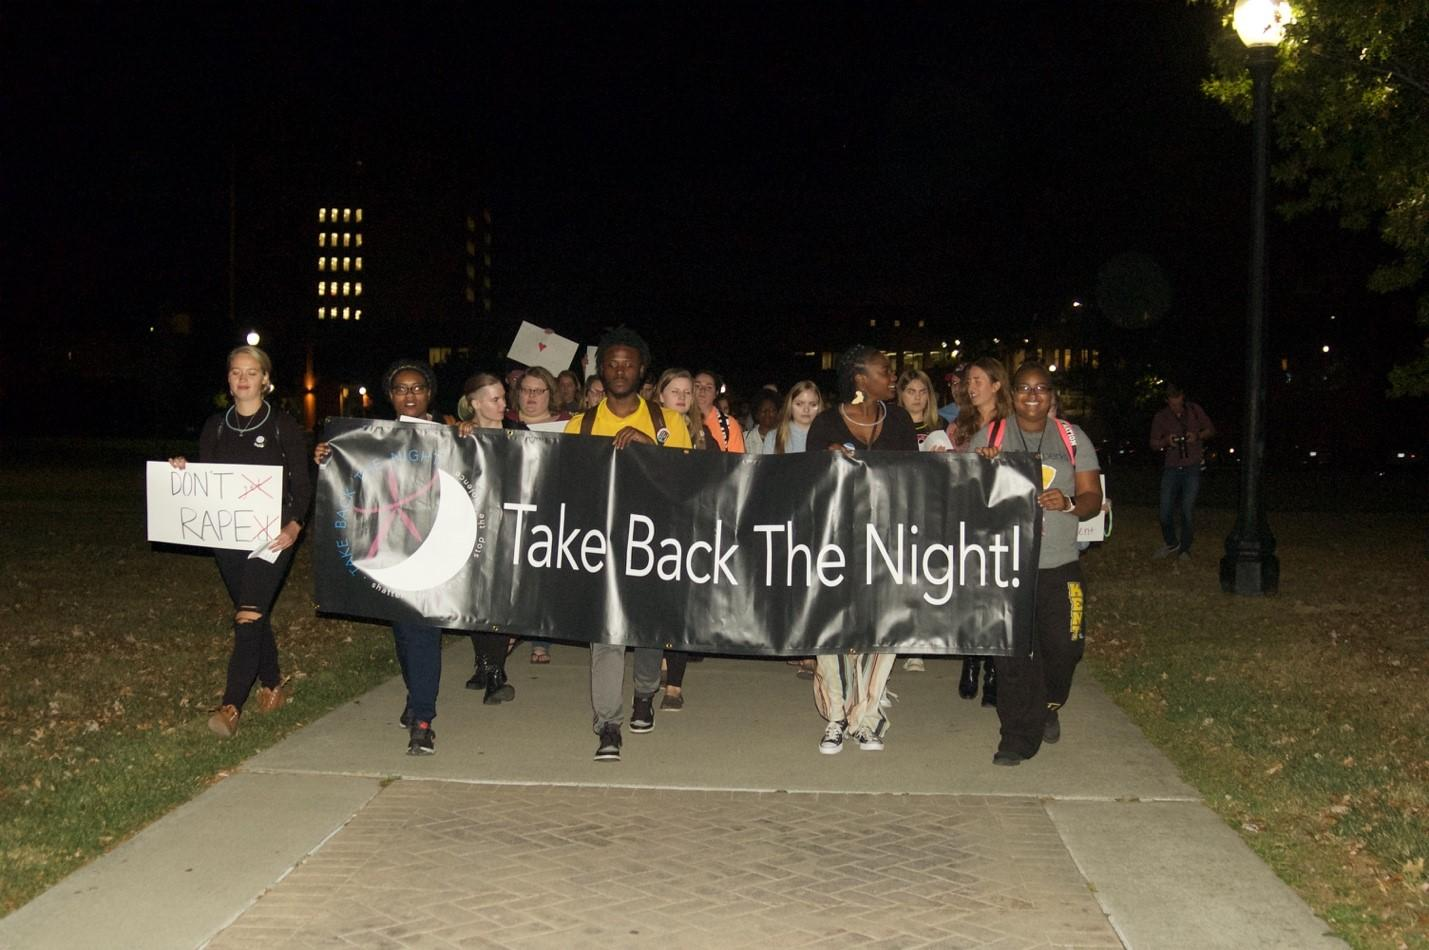 Students march from Risman Plaza to the Women's Center to raise awareness for sexual violence.